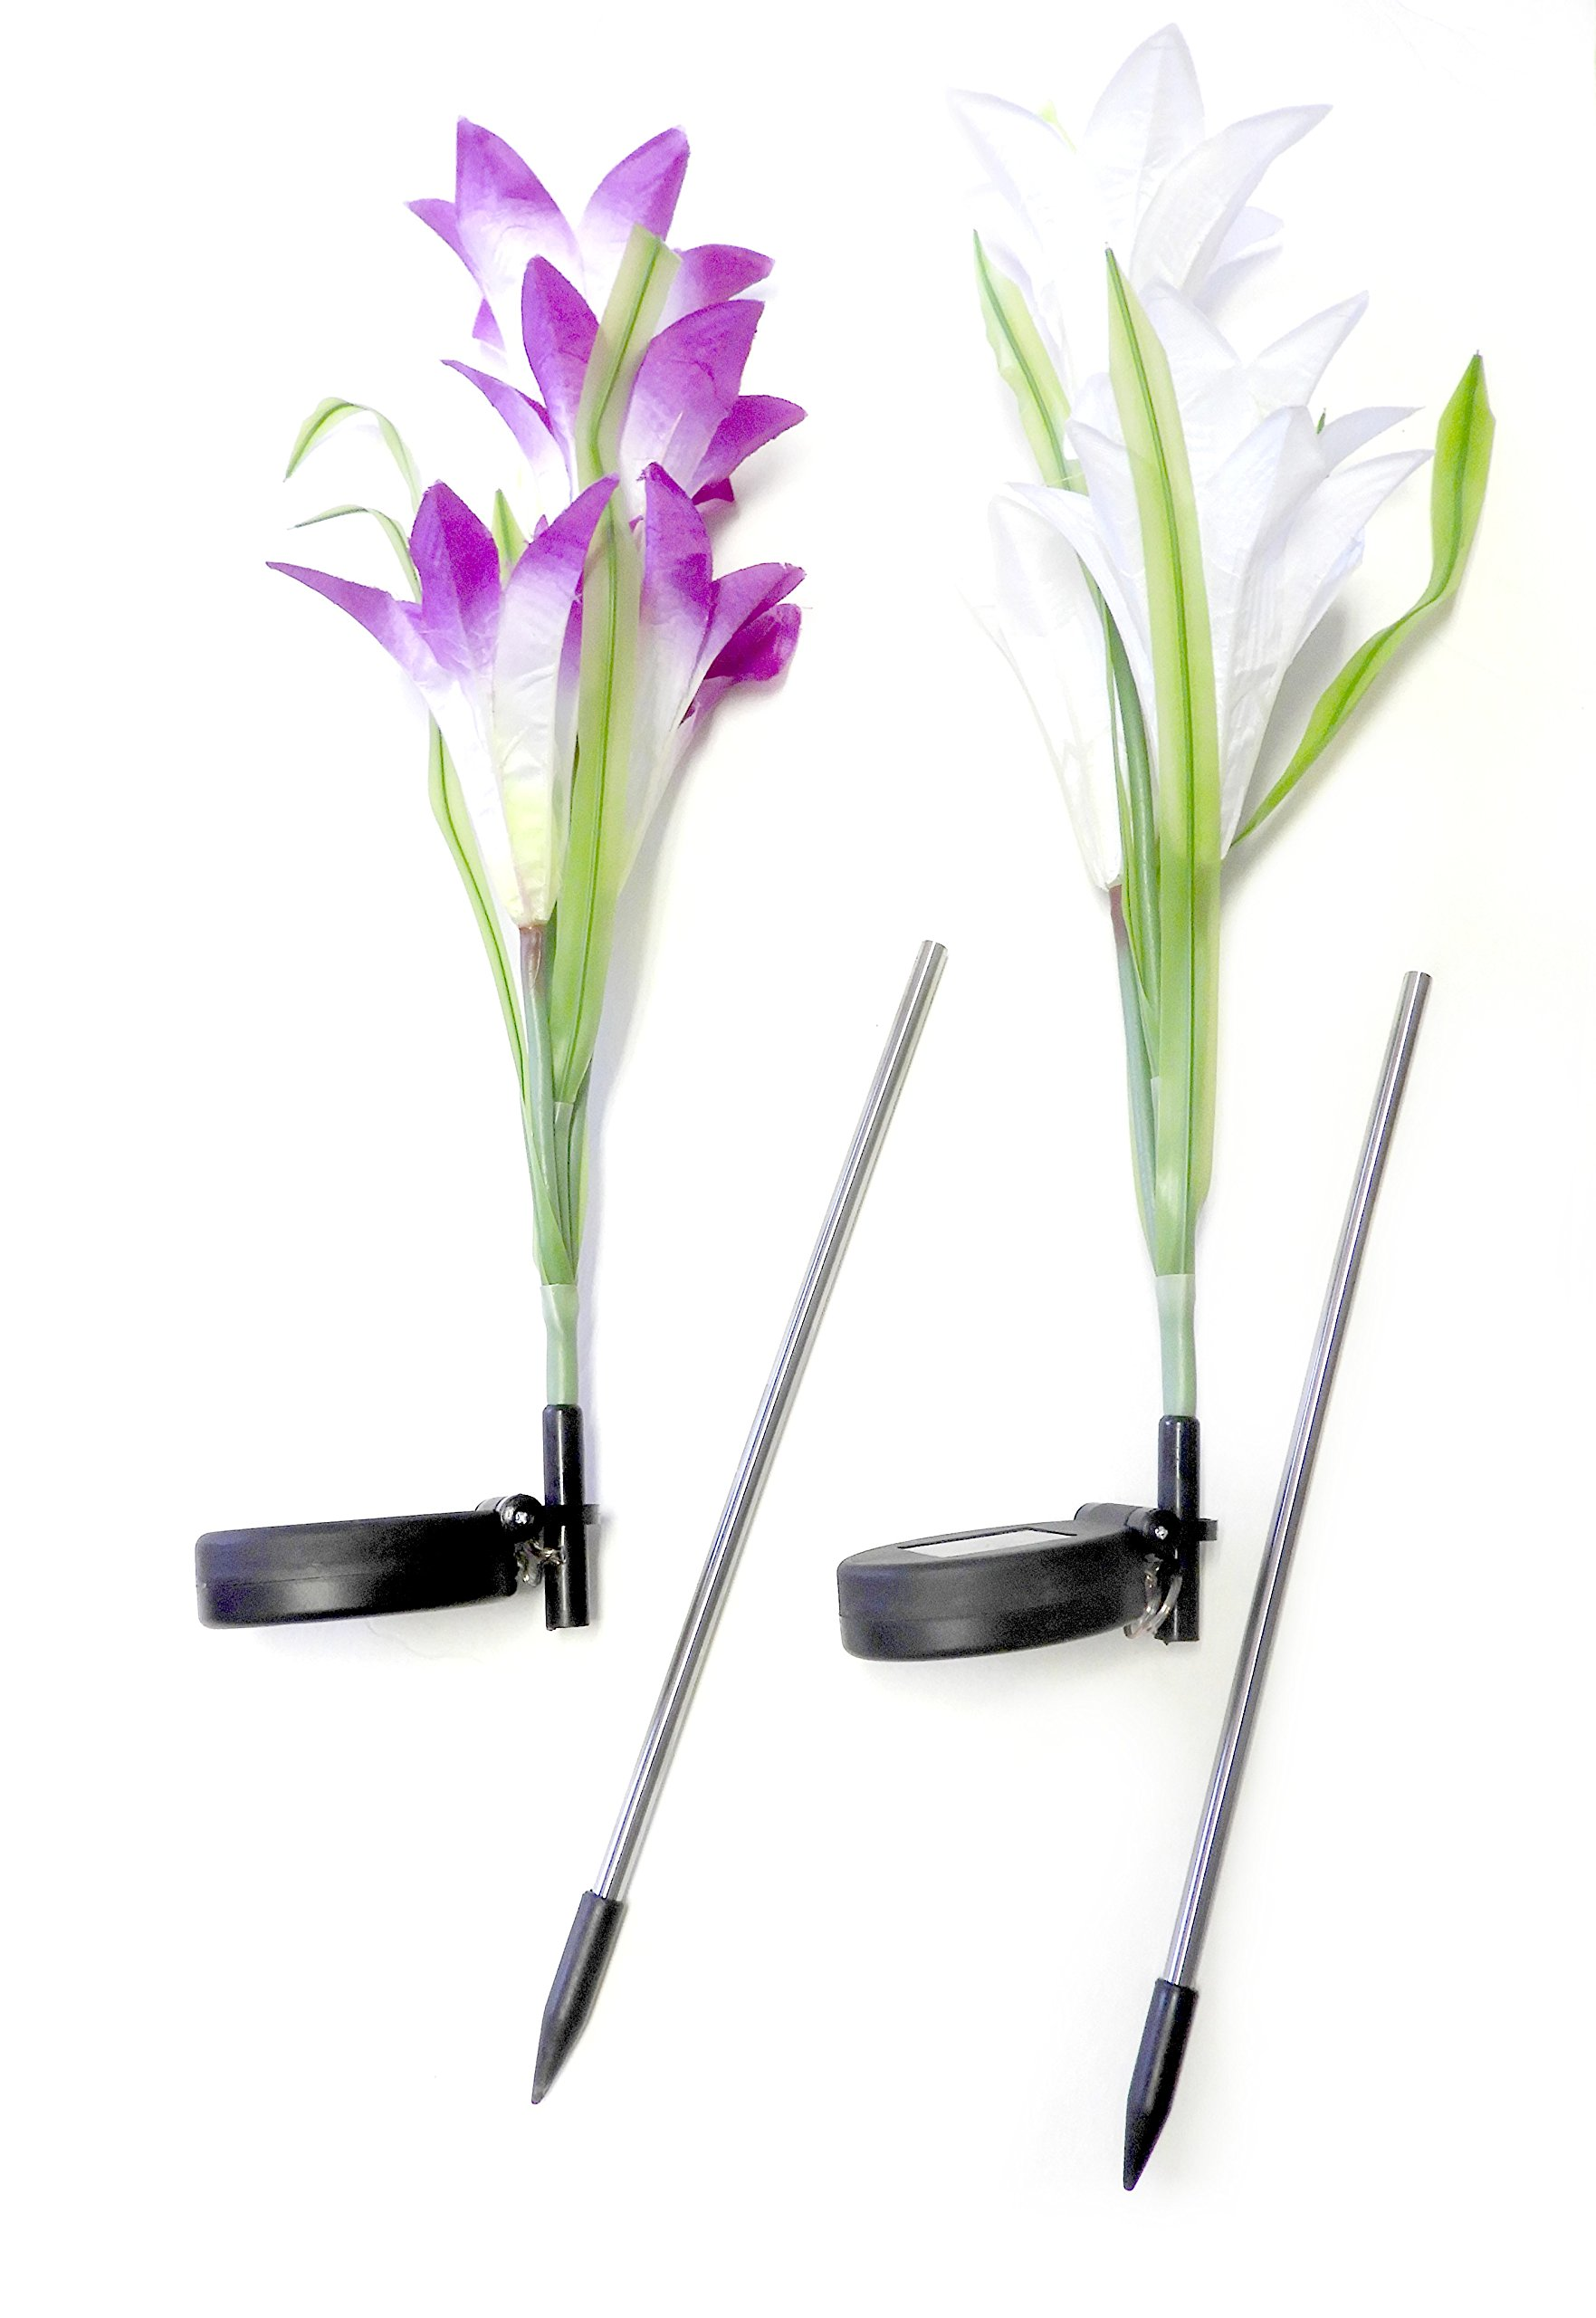 DINY Home & Style Outdoor Solar Flower Garden Stake Lights (2 Pack) Garden Lilly Flowers Multi Color LED Light Changing White and Purple Indoor-Outdoor